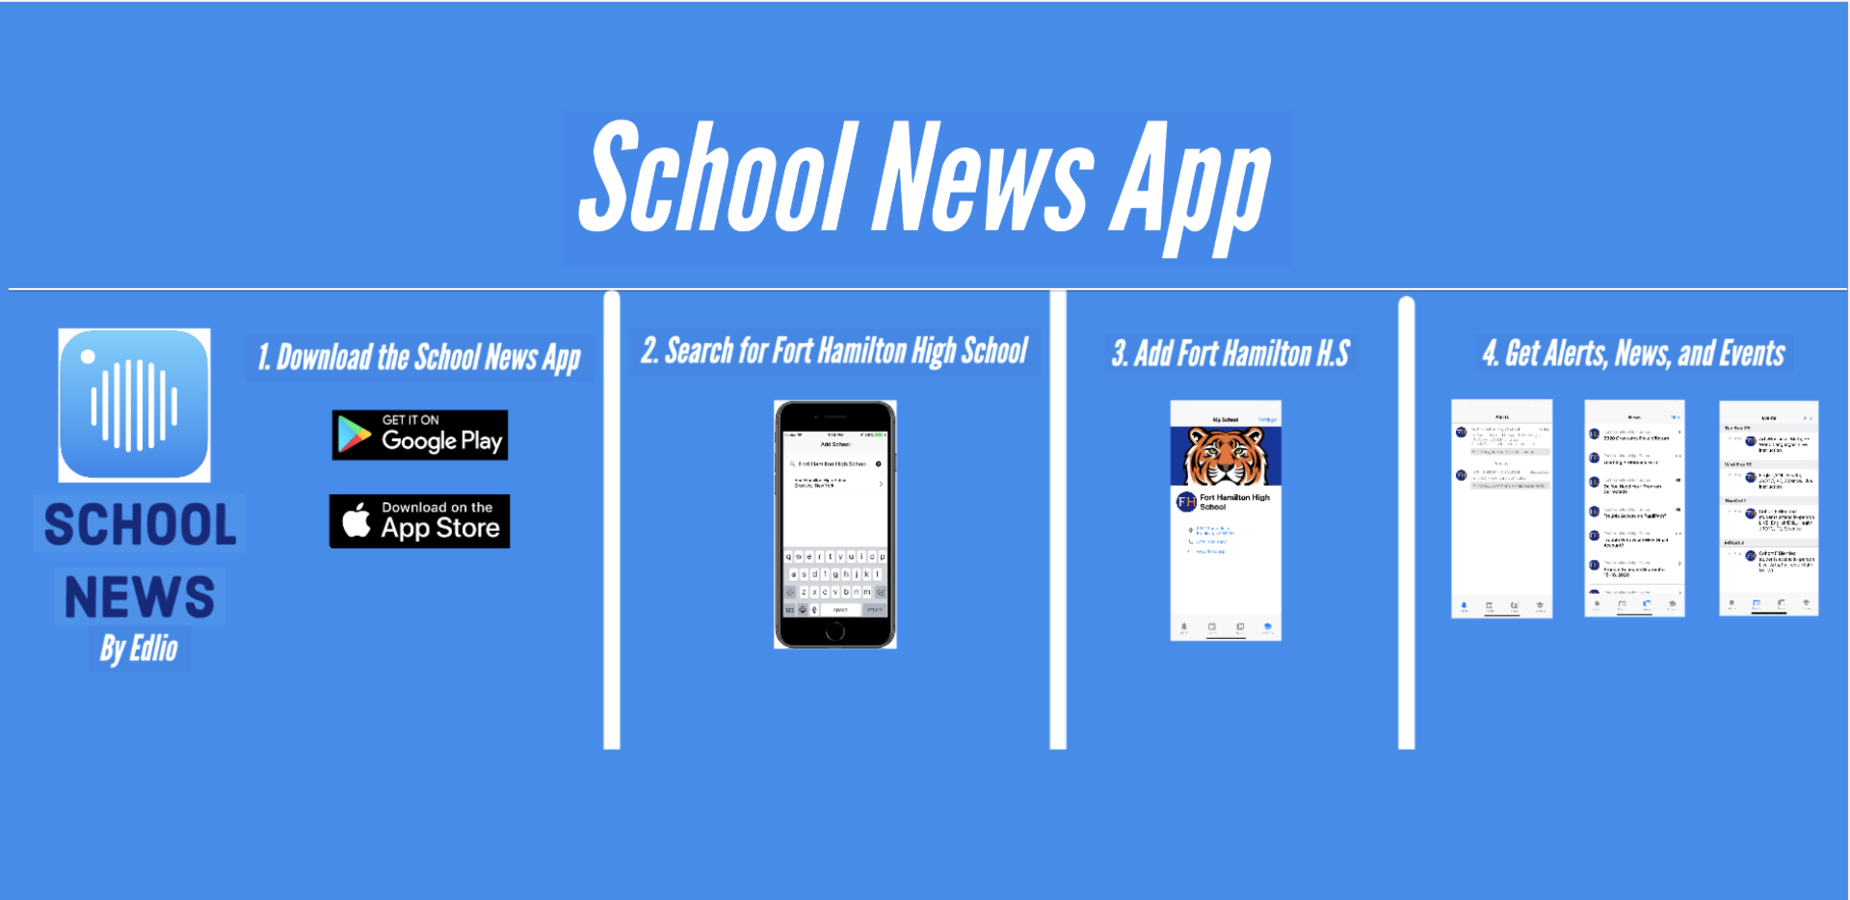 School News, iphone image, screenshots of school news app